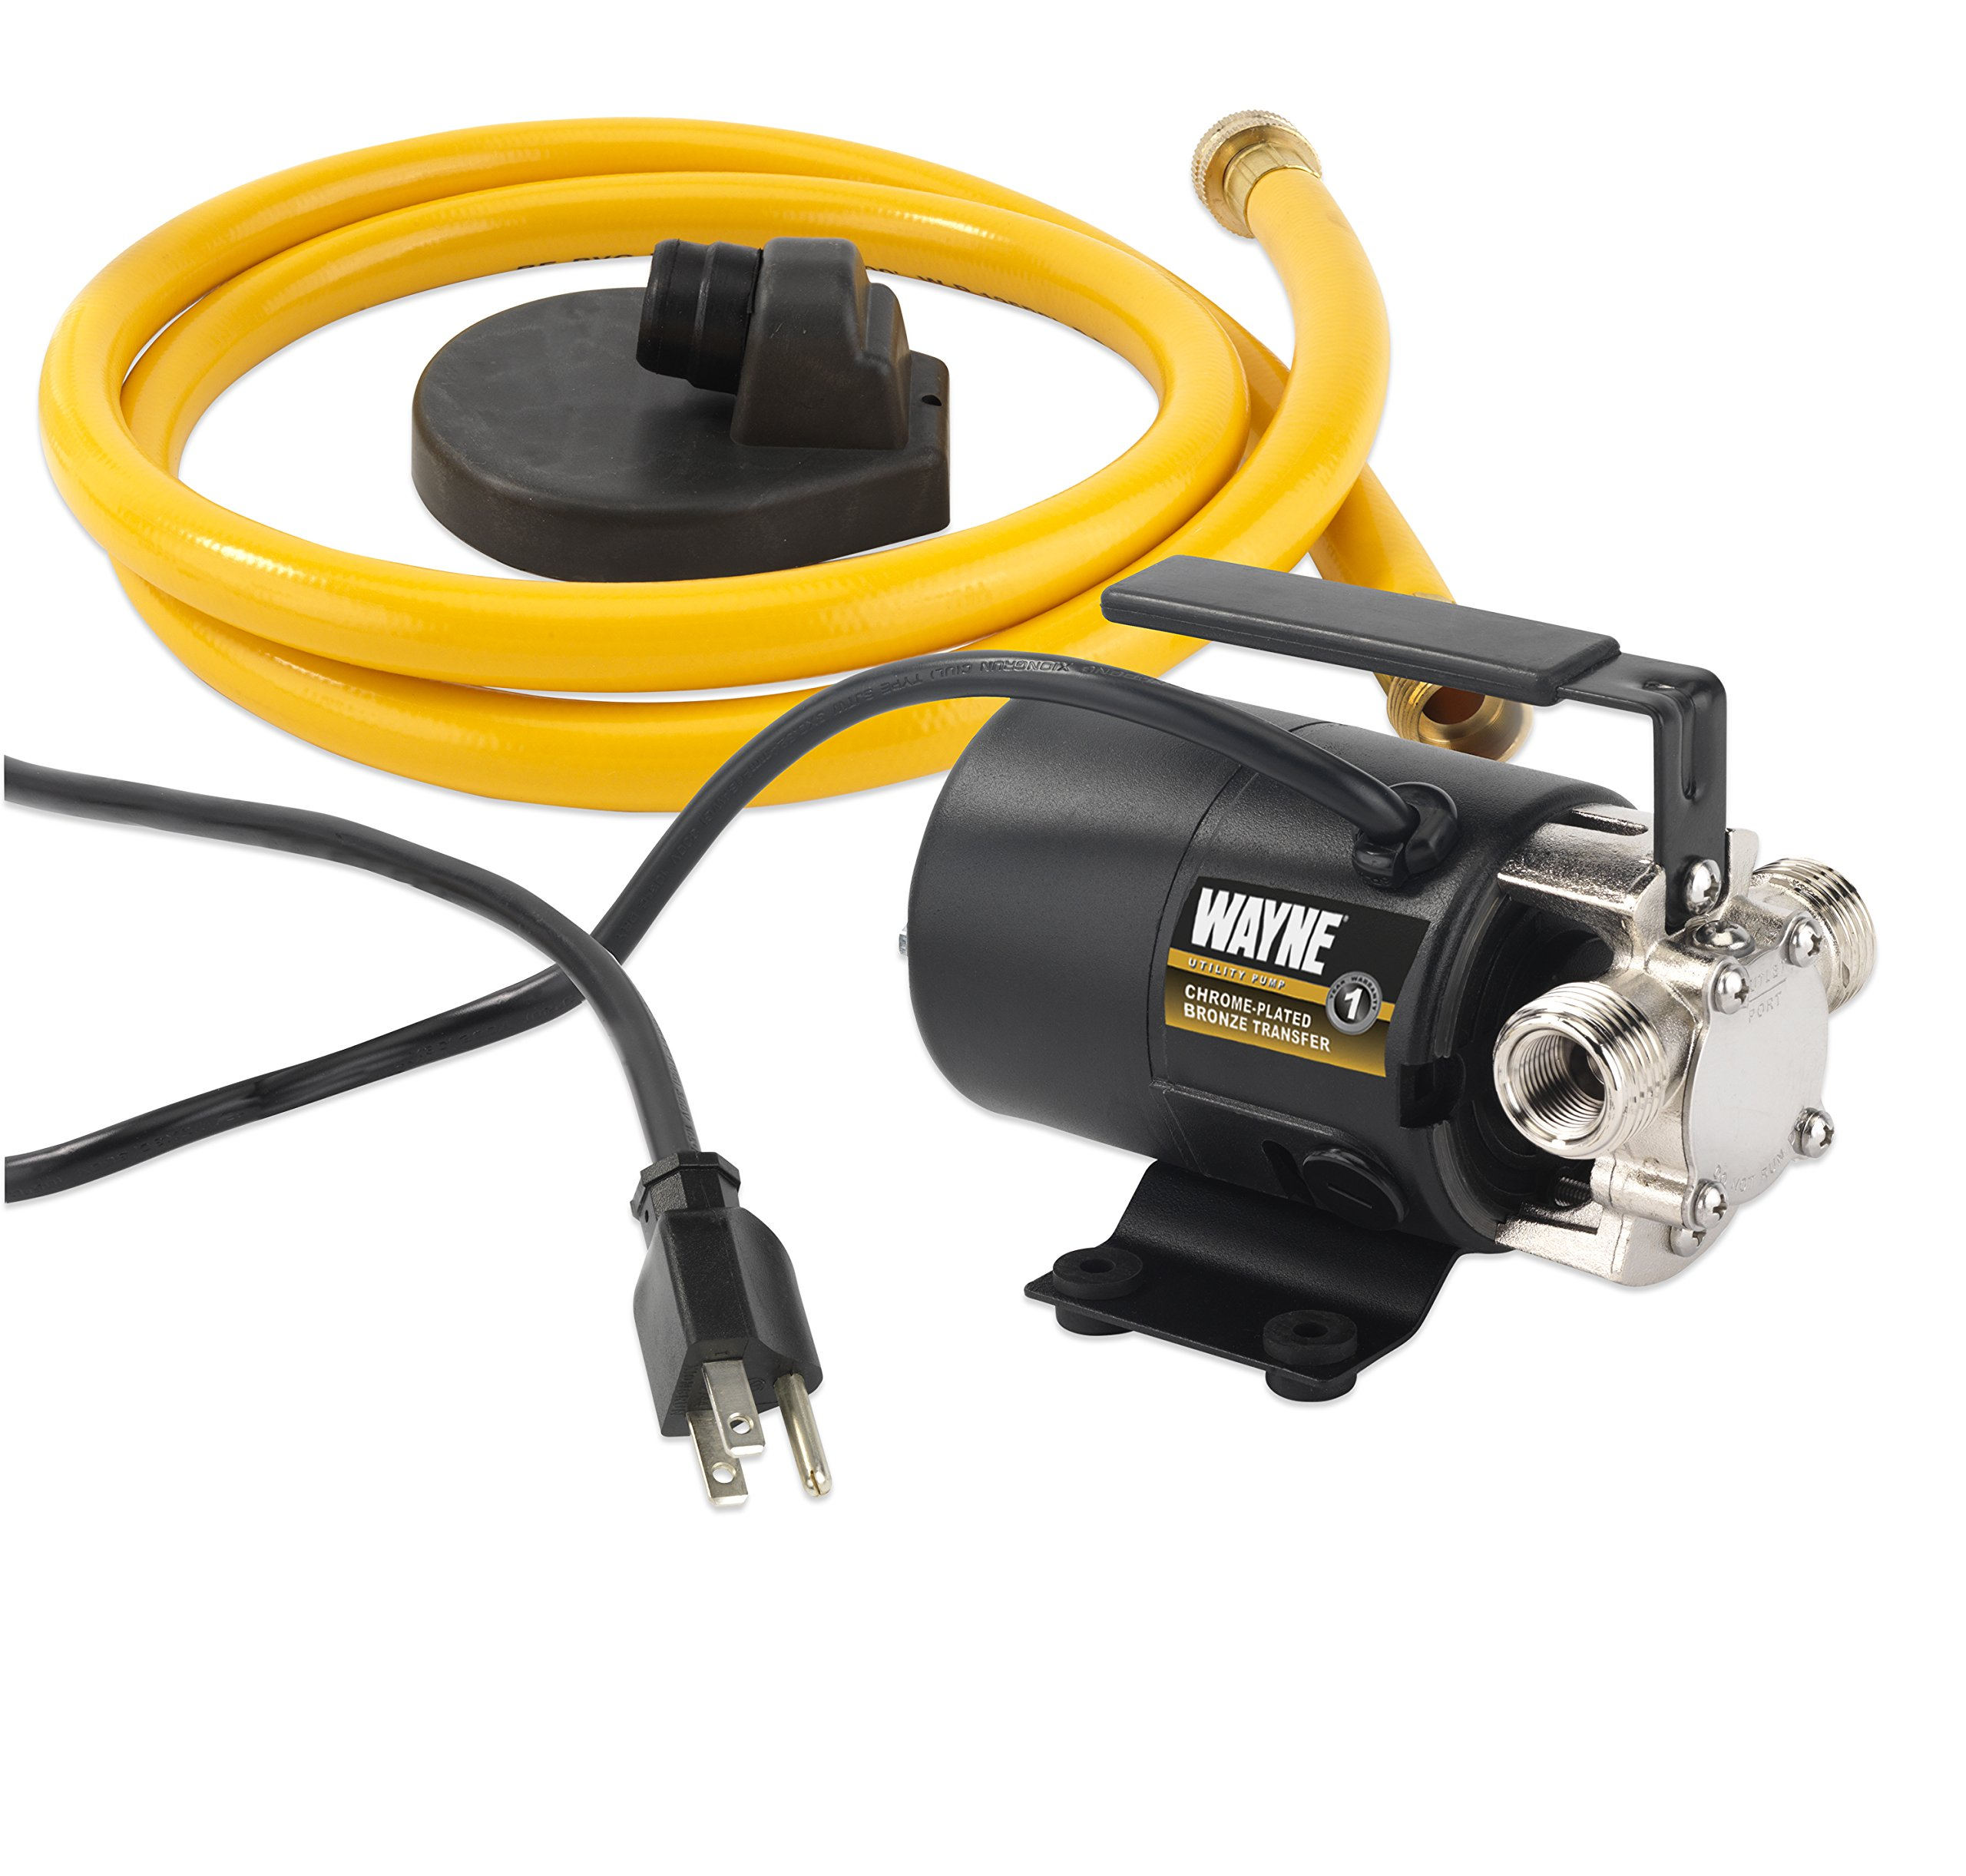 WAYNE PC2 Portable Transfer Water Pump With Suction Hose And Attachment, Black by Wayne